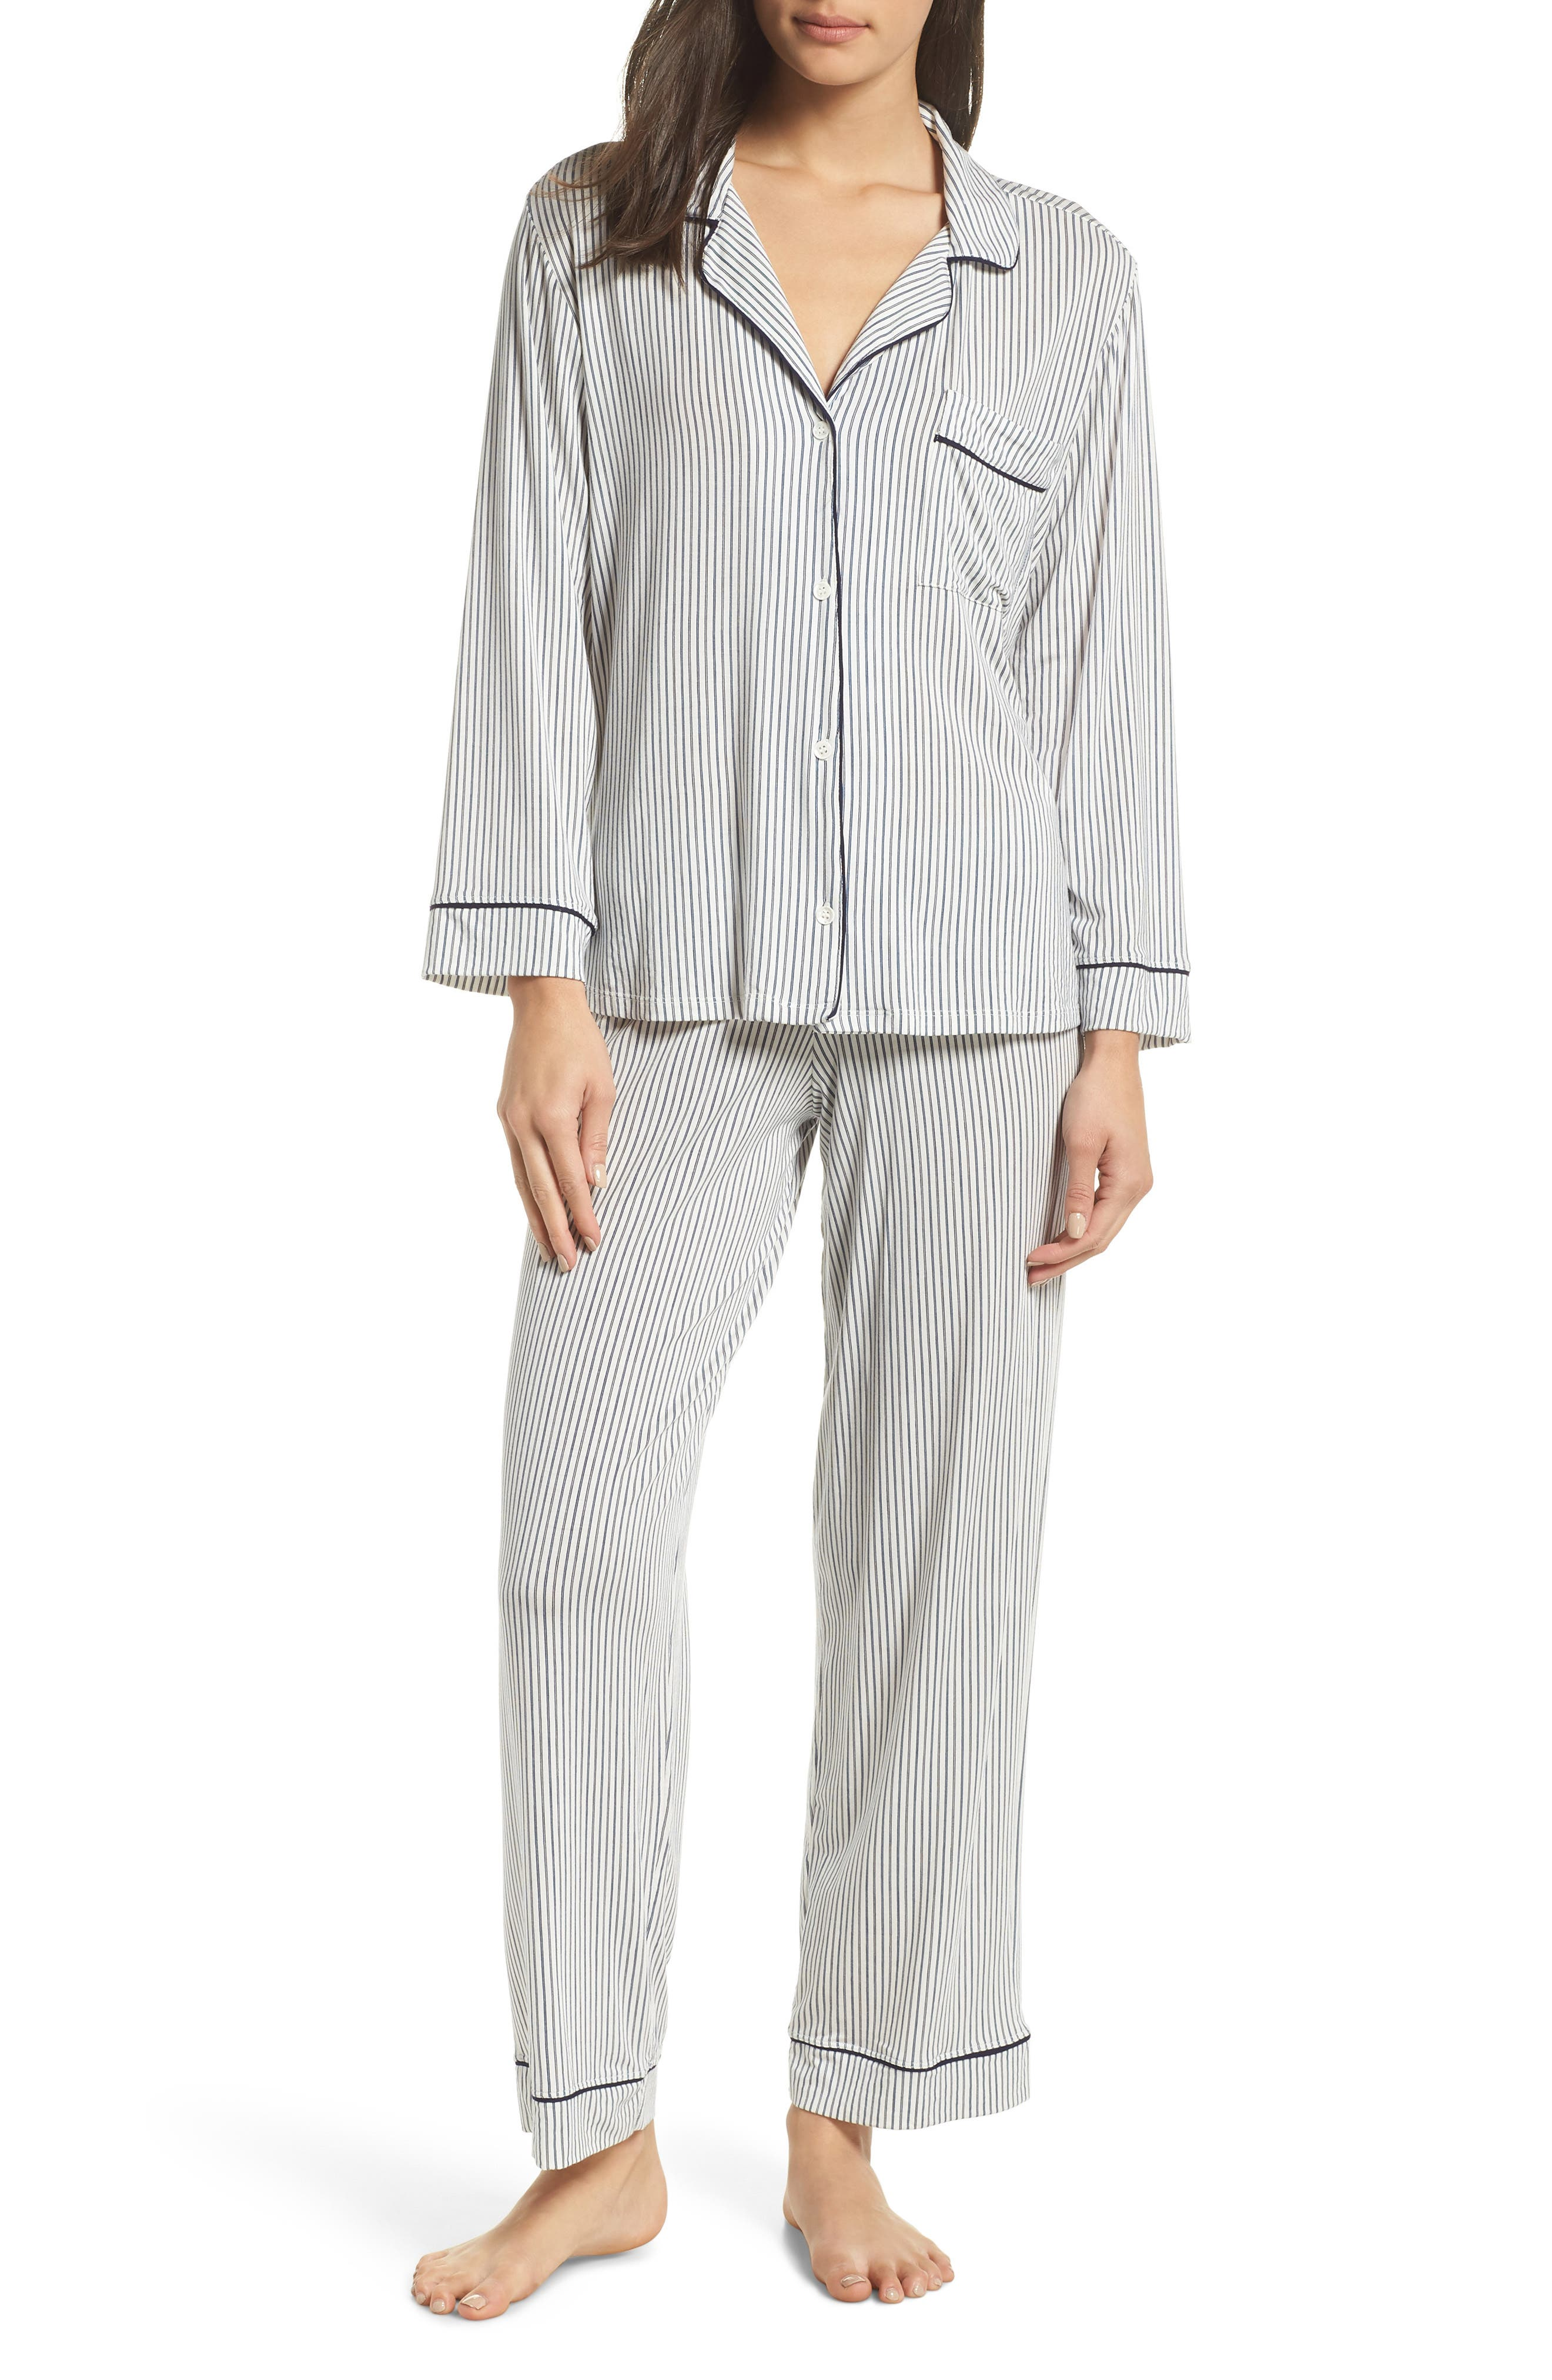 EBERJEY Sleep Chic Pajamas, Main, color, NORDIC STRPS/ NORTHERN LIGHTS